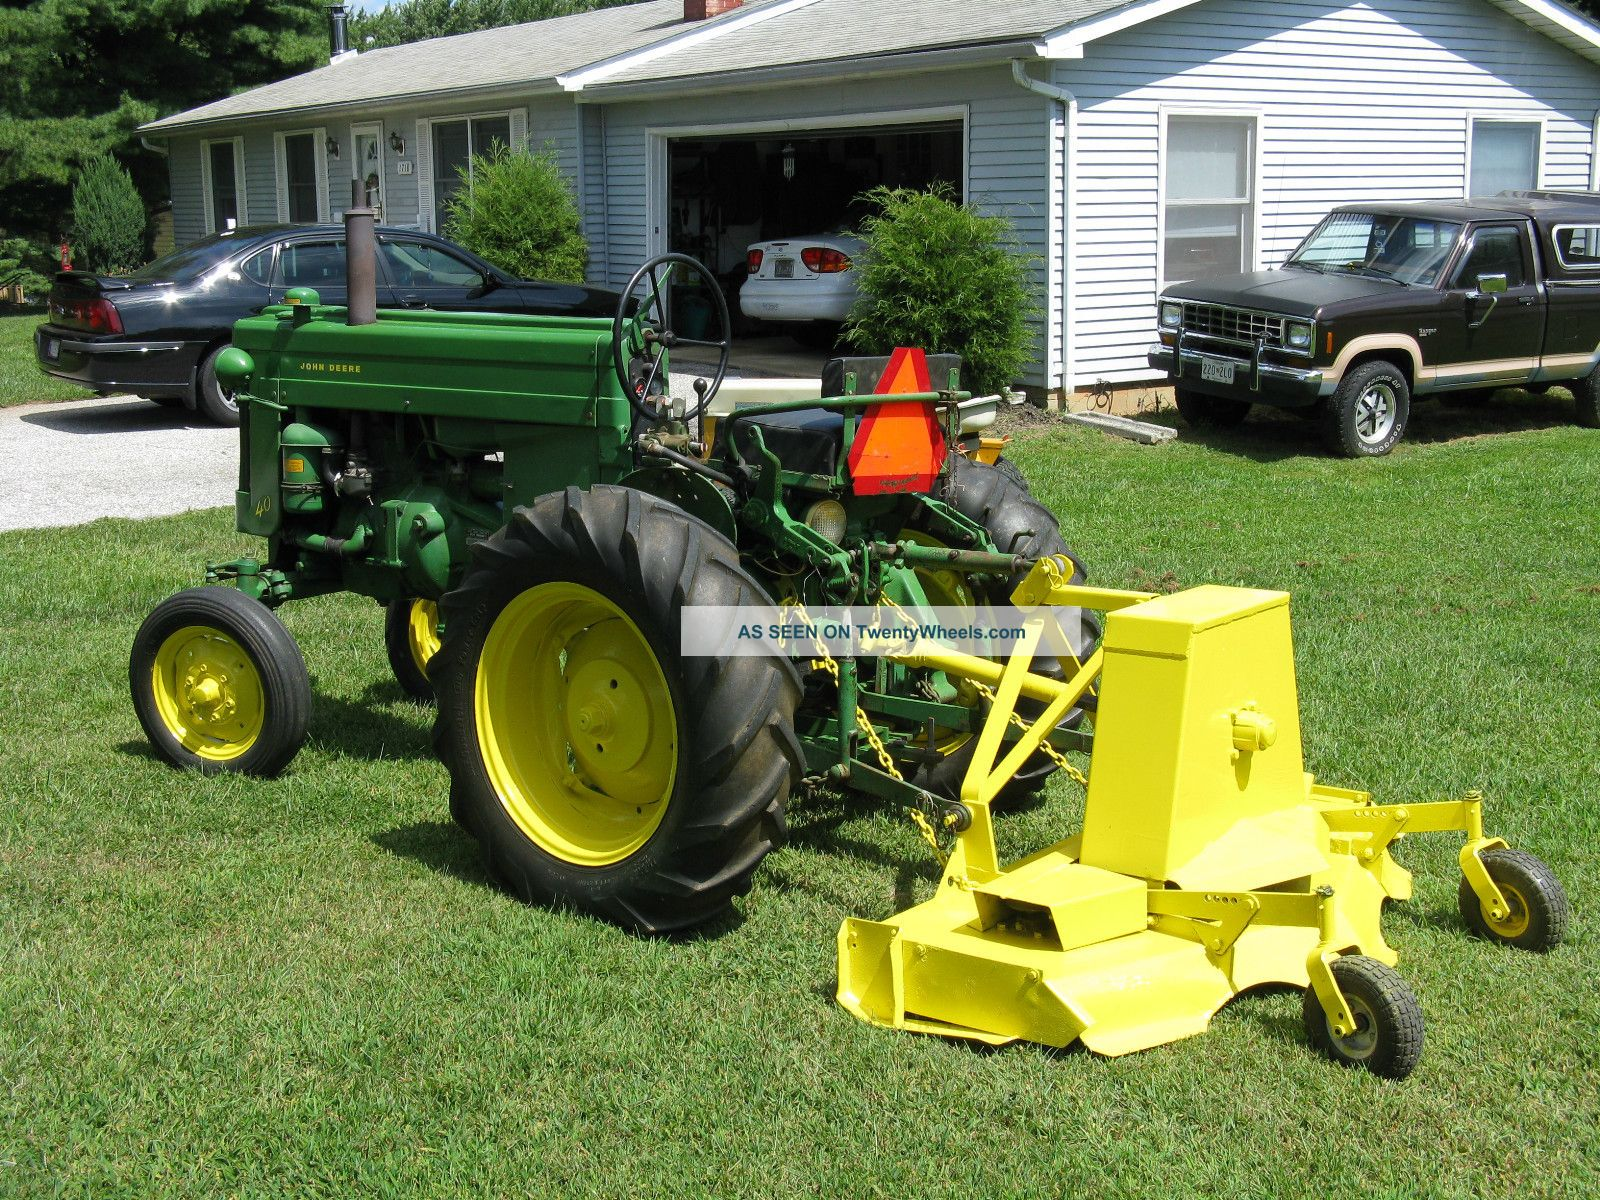 1955 John Deere Model 40 W/ Woods Rm59 3 Point Finish Mower